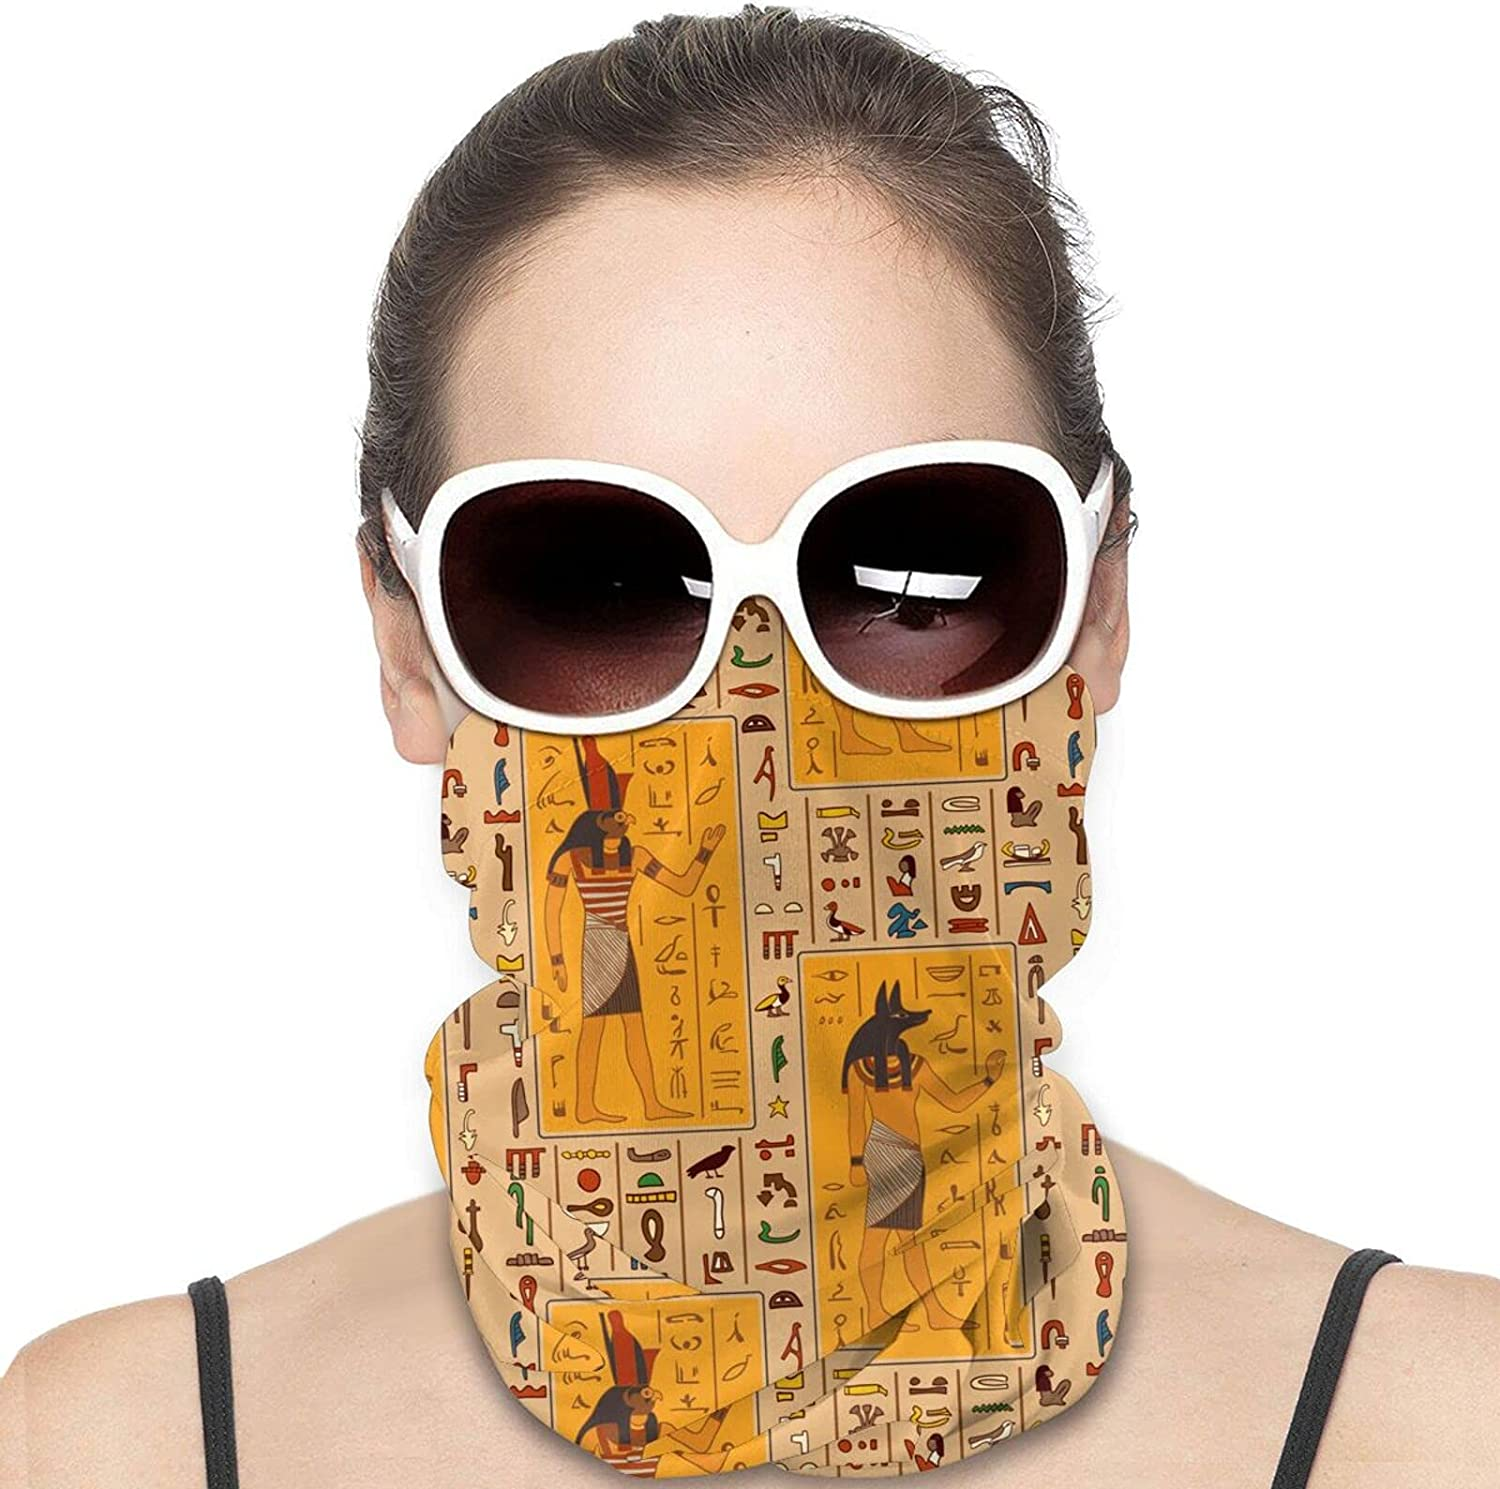 Egyptian Gods And Ancient Egyptian Hieroglyphs Round Neck Gaiter Bandnas Face Cover Uv Protection Prevent bask in Ice Scarf Headbands Perfect for Motorcycle Cycling Running Festival Raves Outdoors